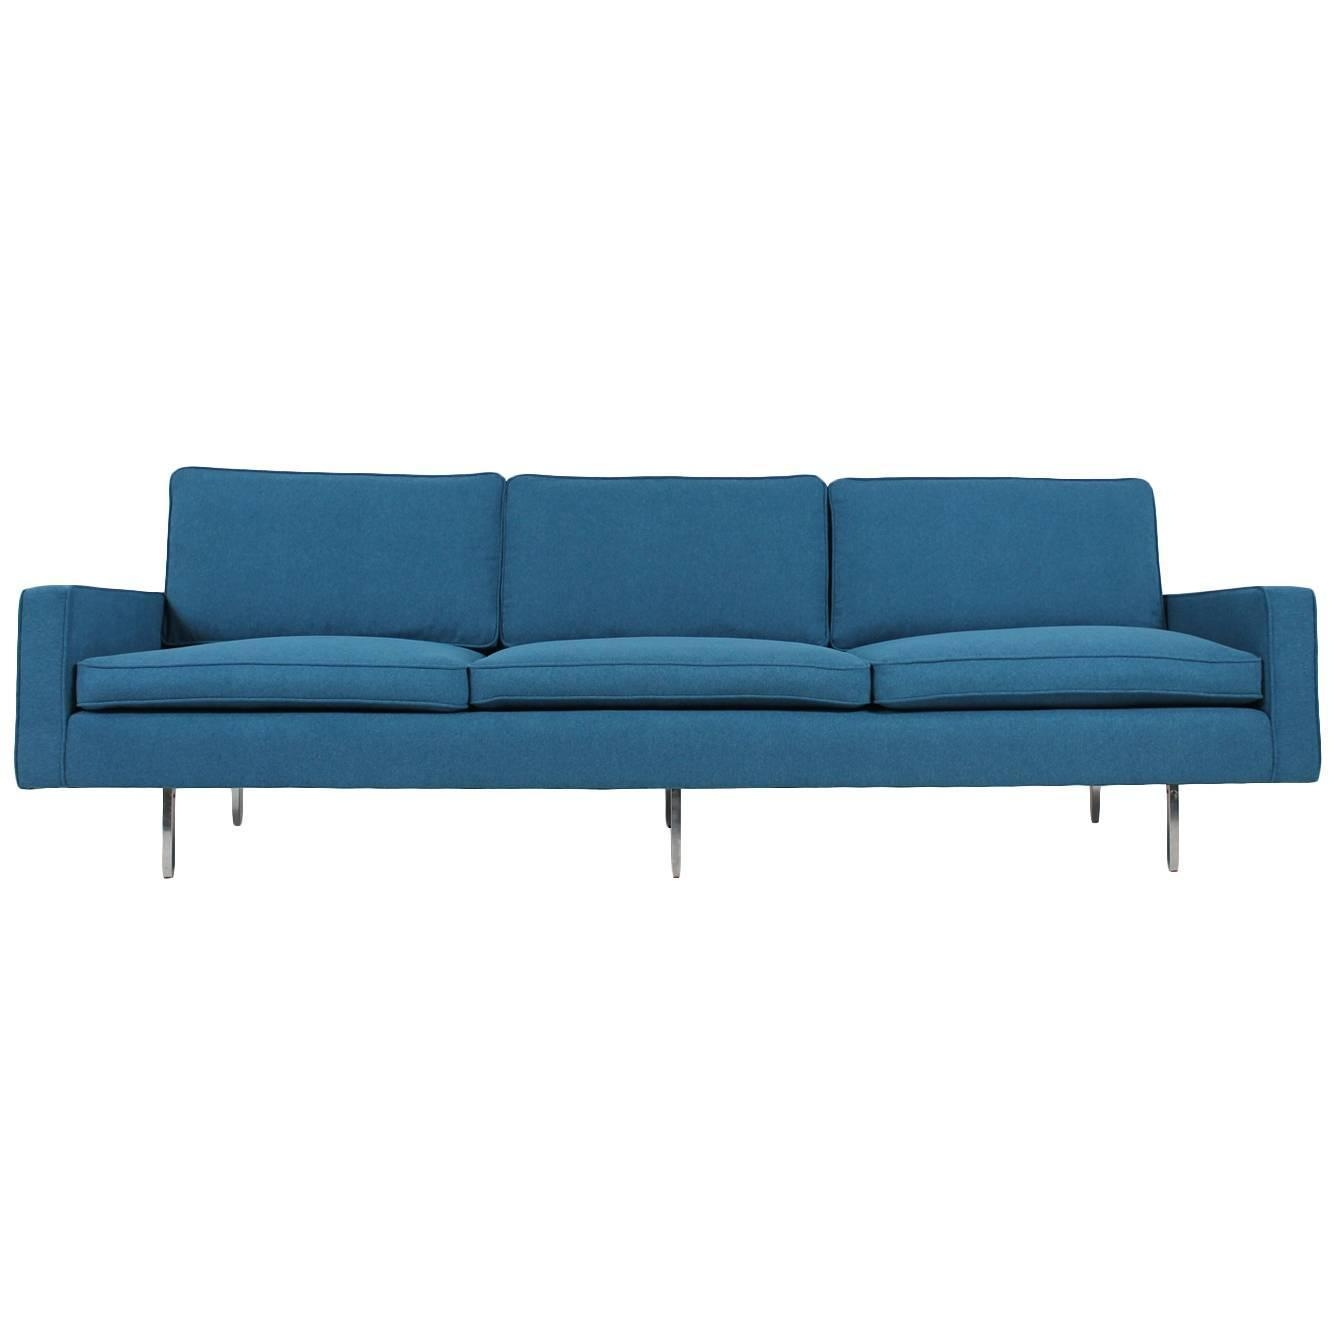 Beautiful Mid Century Florence Knoll Sofa Mod (Image 2 of 20)